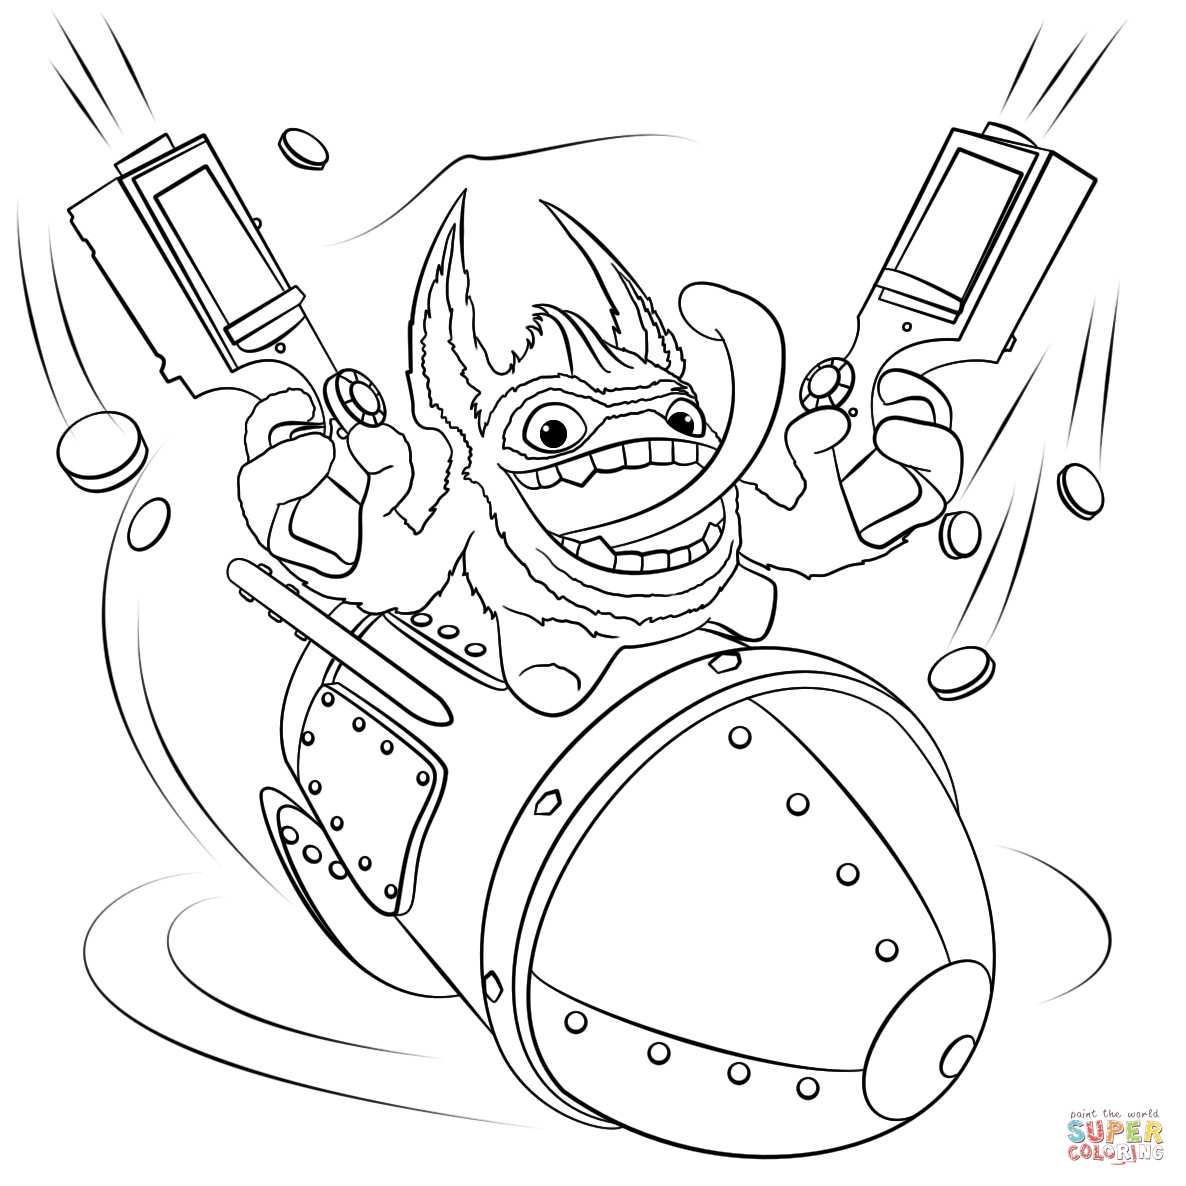 Best ideas about Skylanders Giants Printable Coloring Pages . Save or Pin Skylanders Trigger Happy coloring page Now.